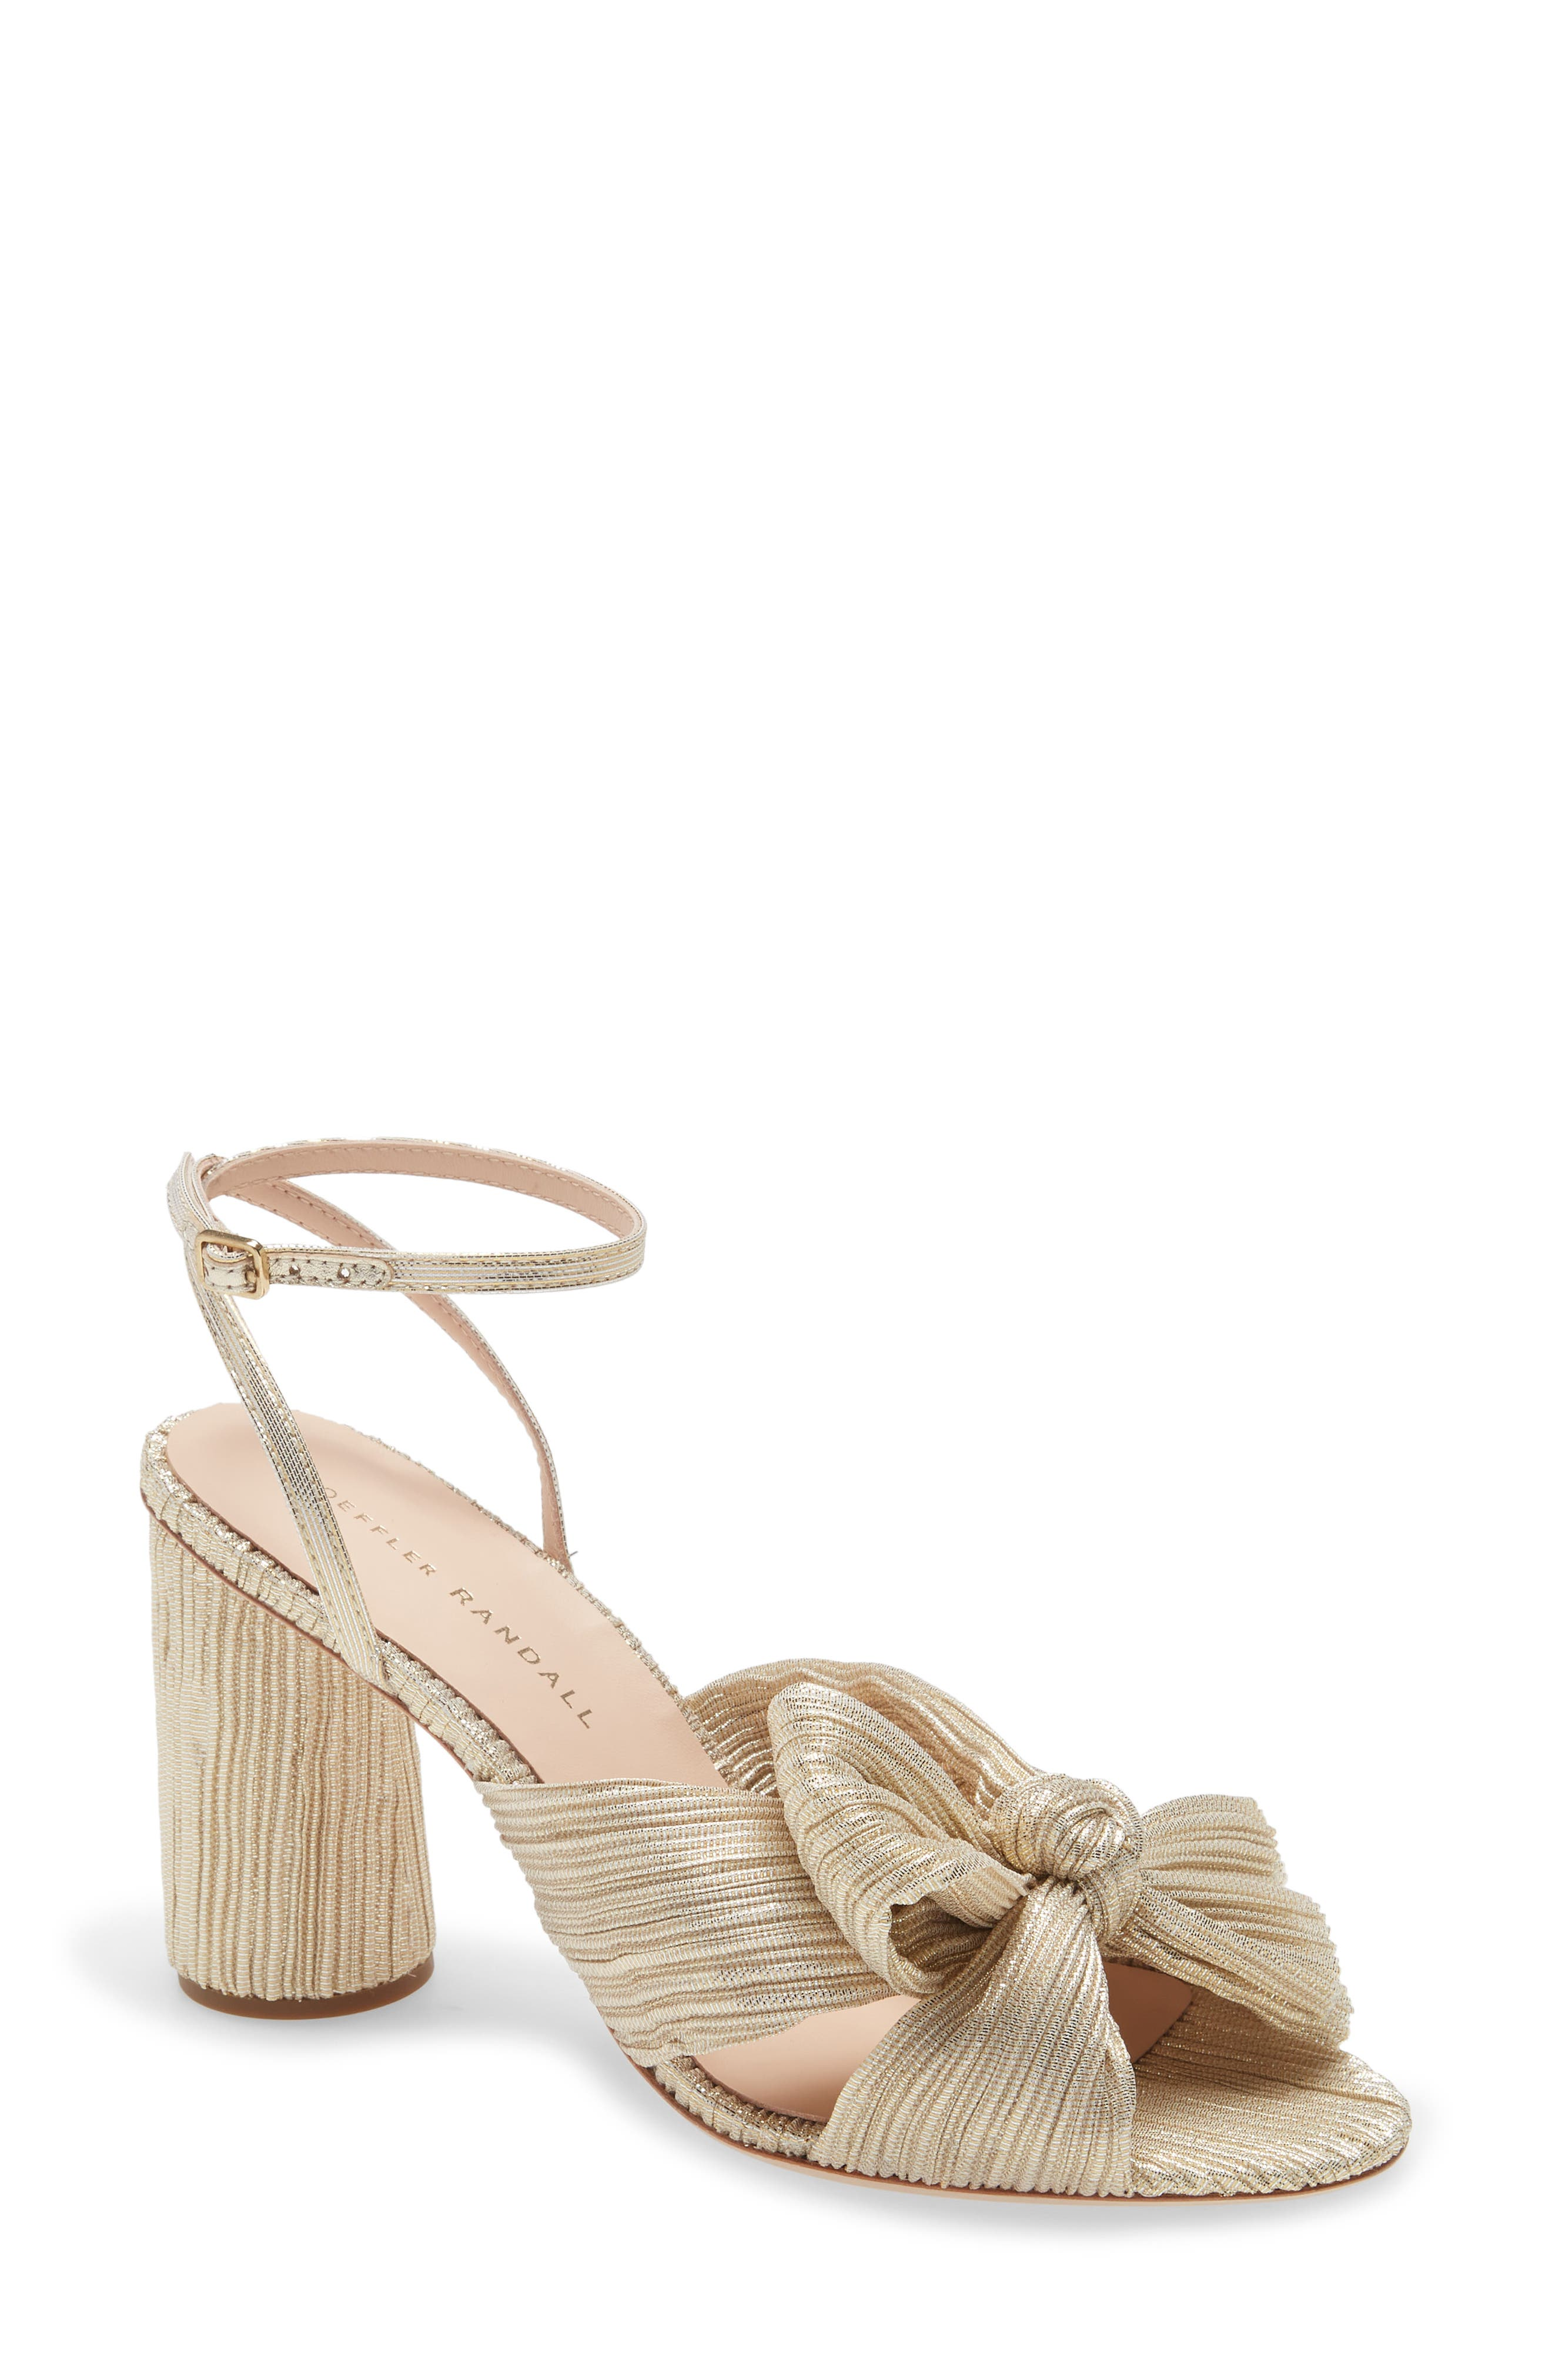 Camellia Knotted Sandal